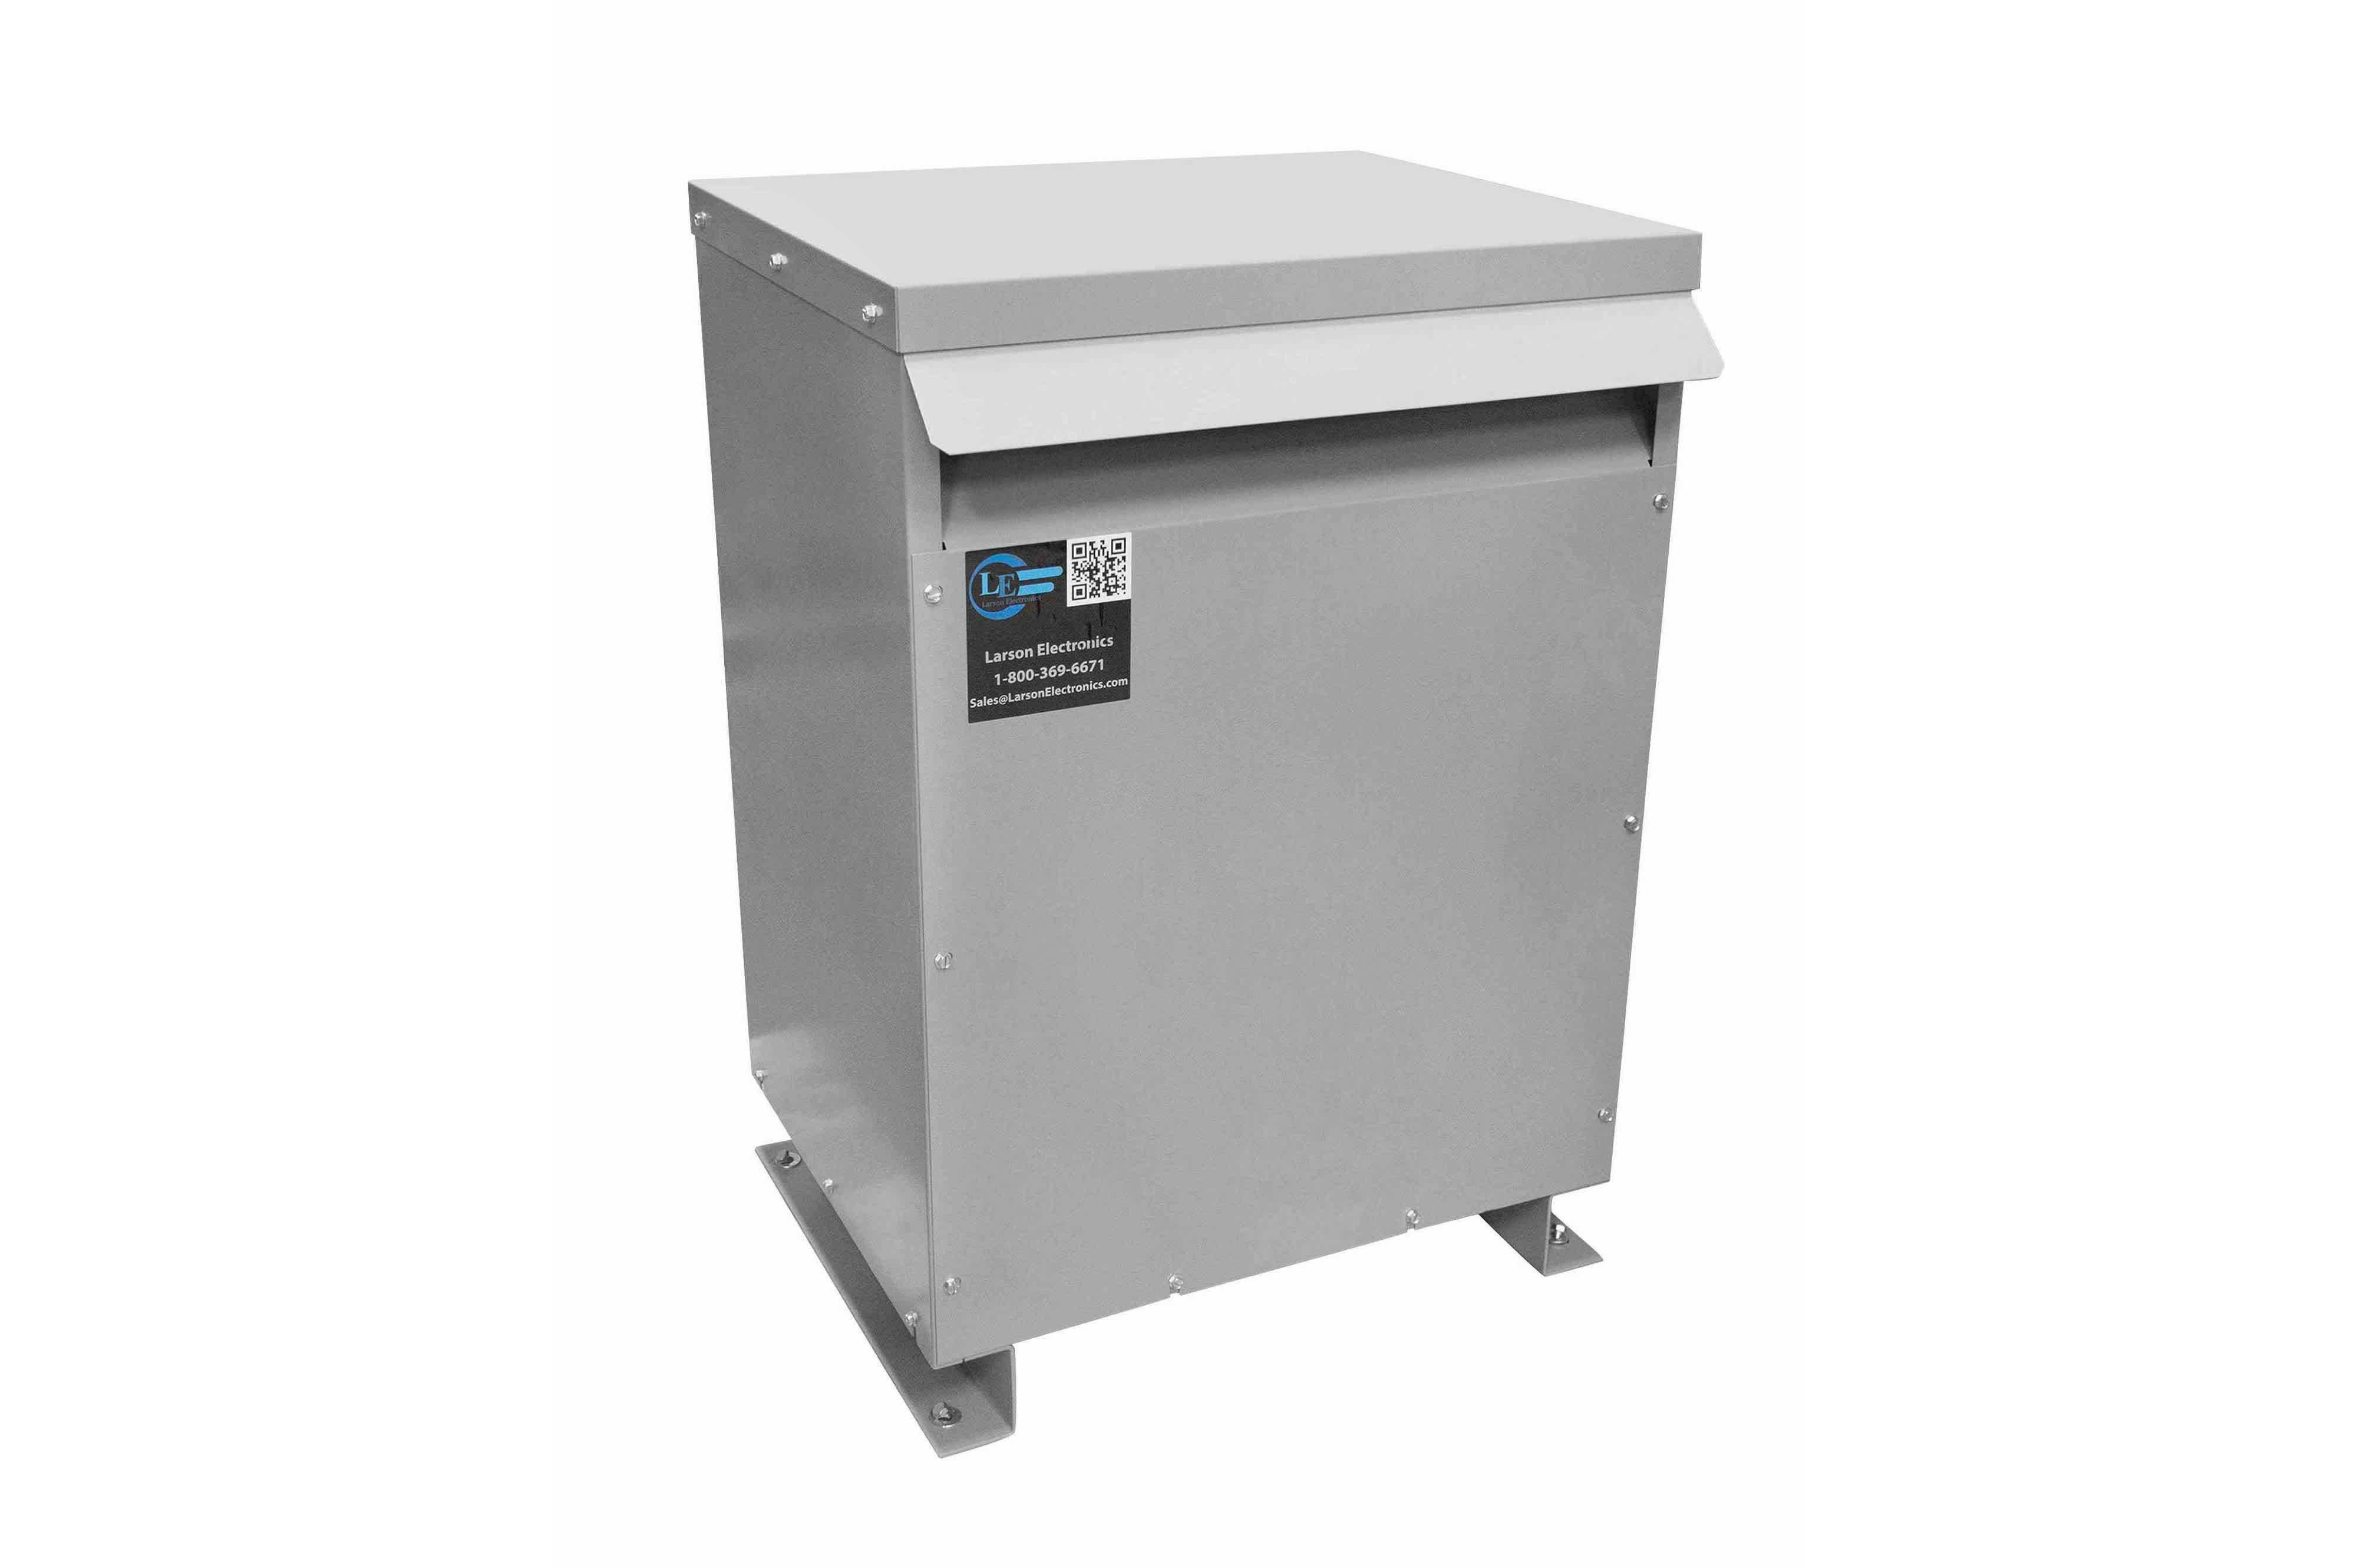 11 kVA 3PH Isolation Transformer, 575V Wye Primary, 415V Delta Secondary, N3R, Ventilated, 60 Hz